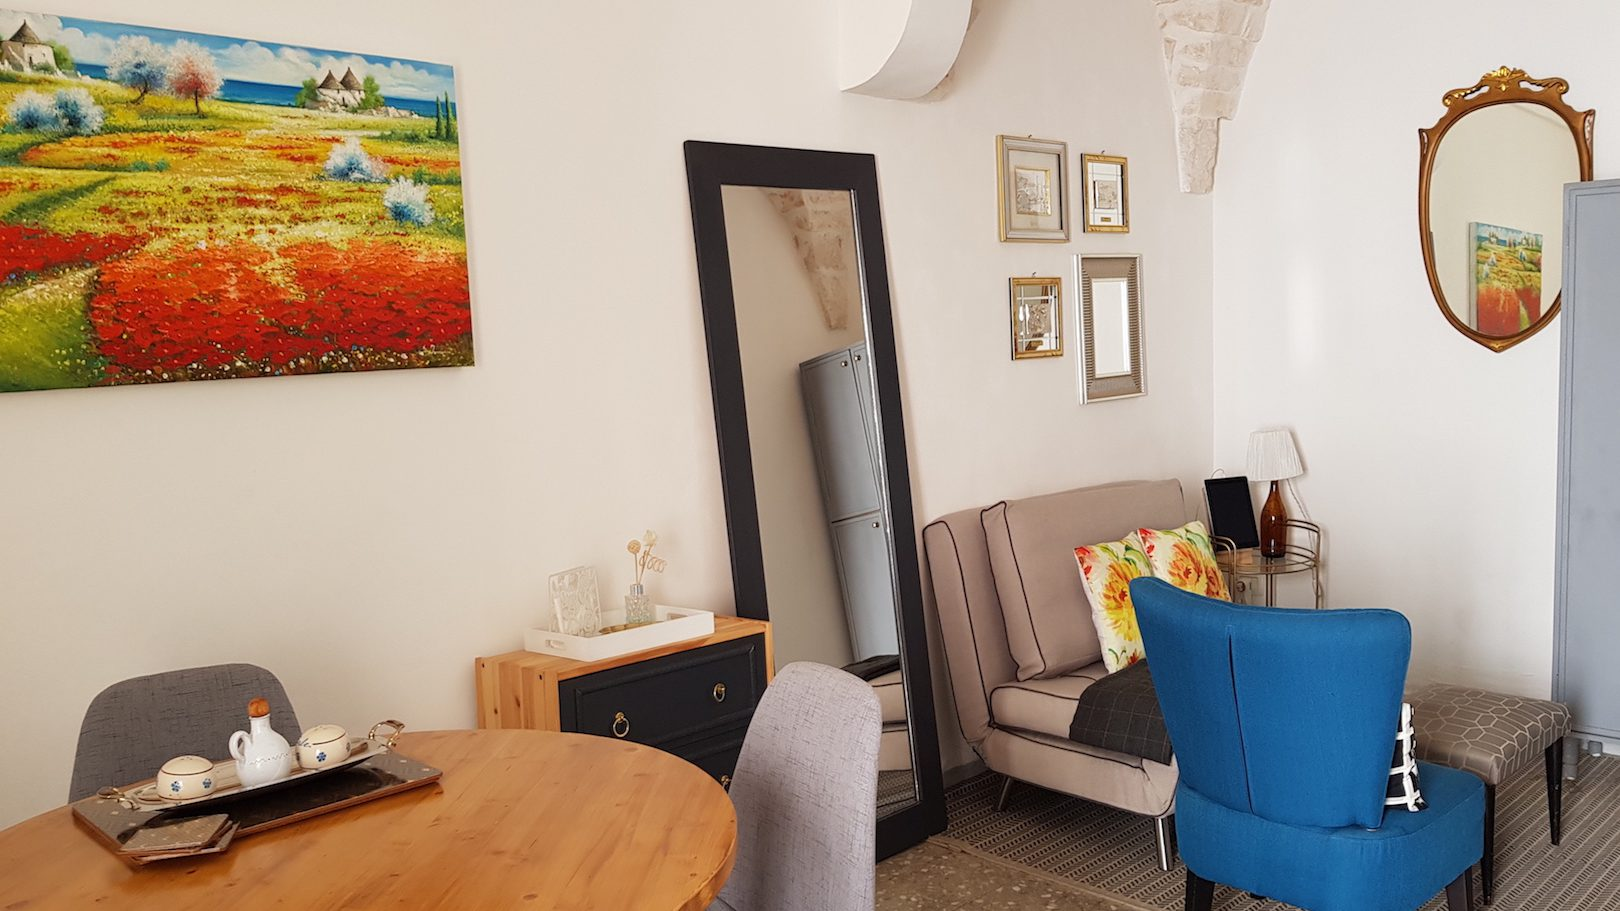 Living and dining area at Casa dei Fiori holiday vacation rental home in Ostuni puglia